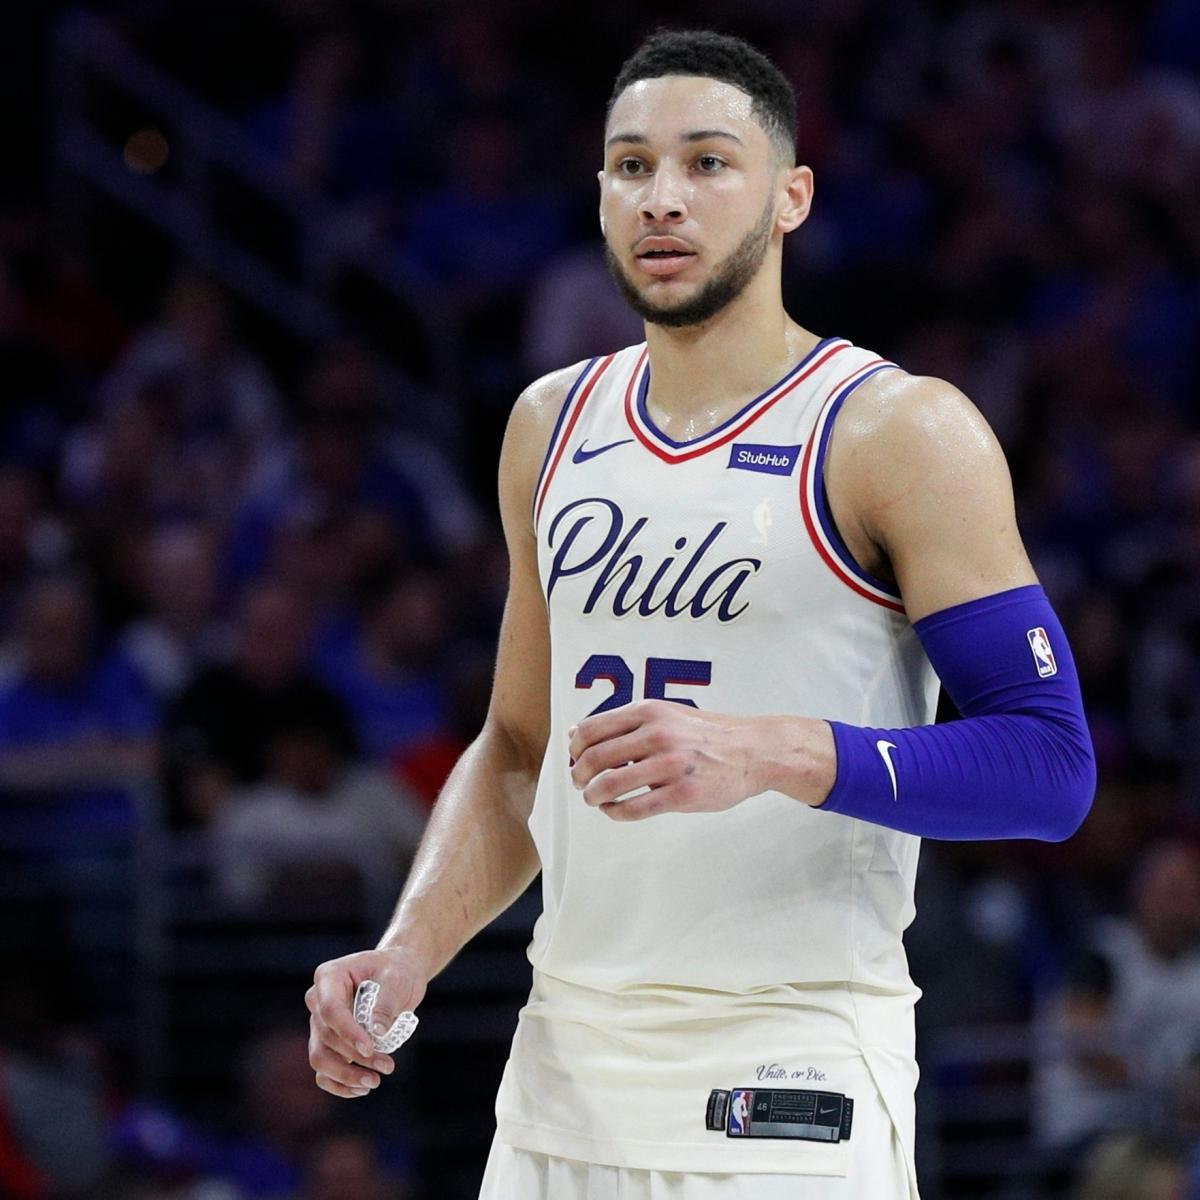 Ben Simmons Wins 2018 NBA Rookie Of The Year Award Over